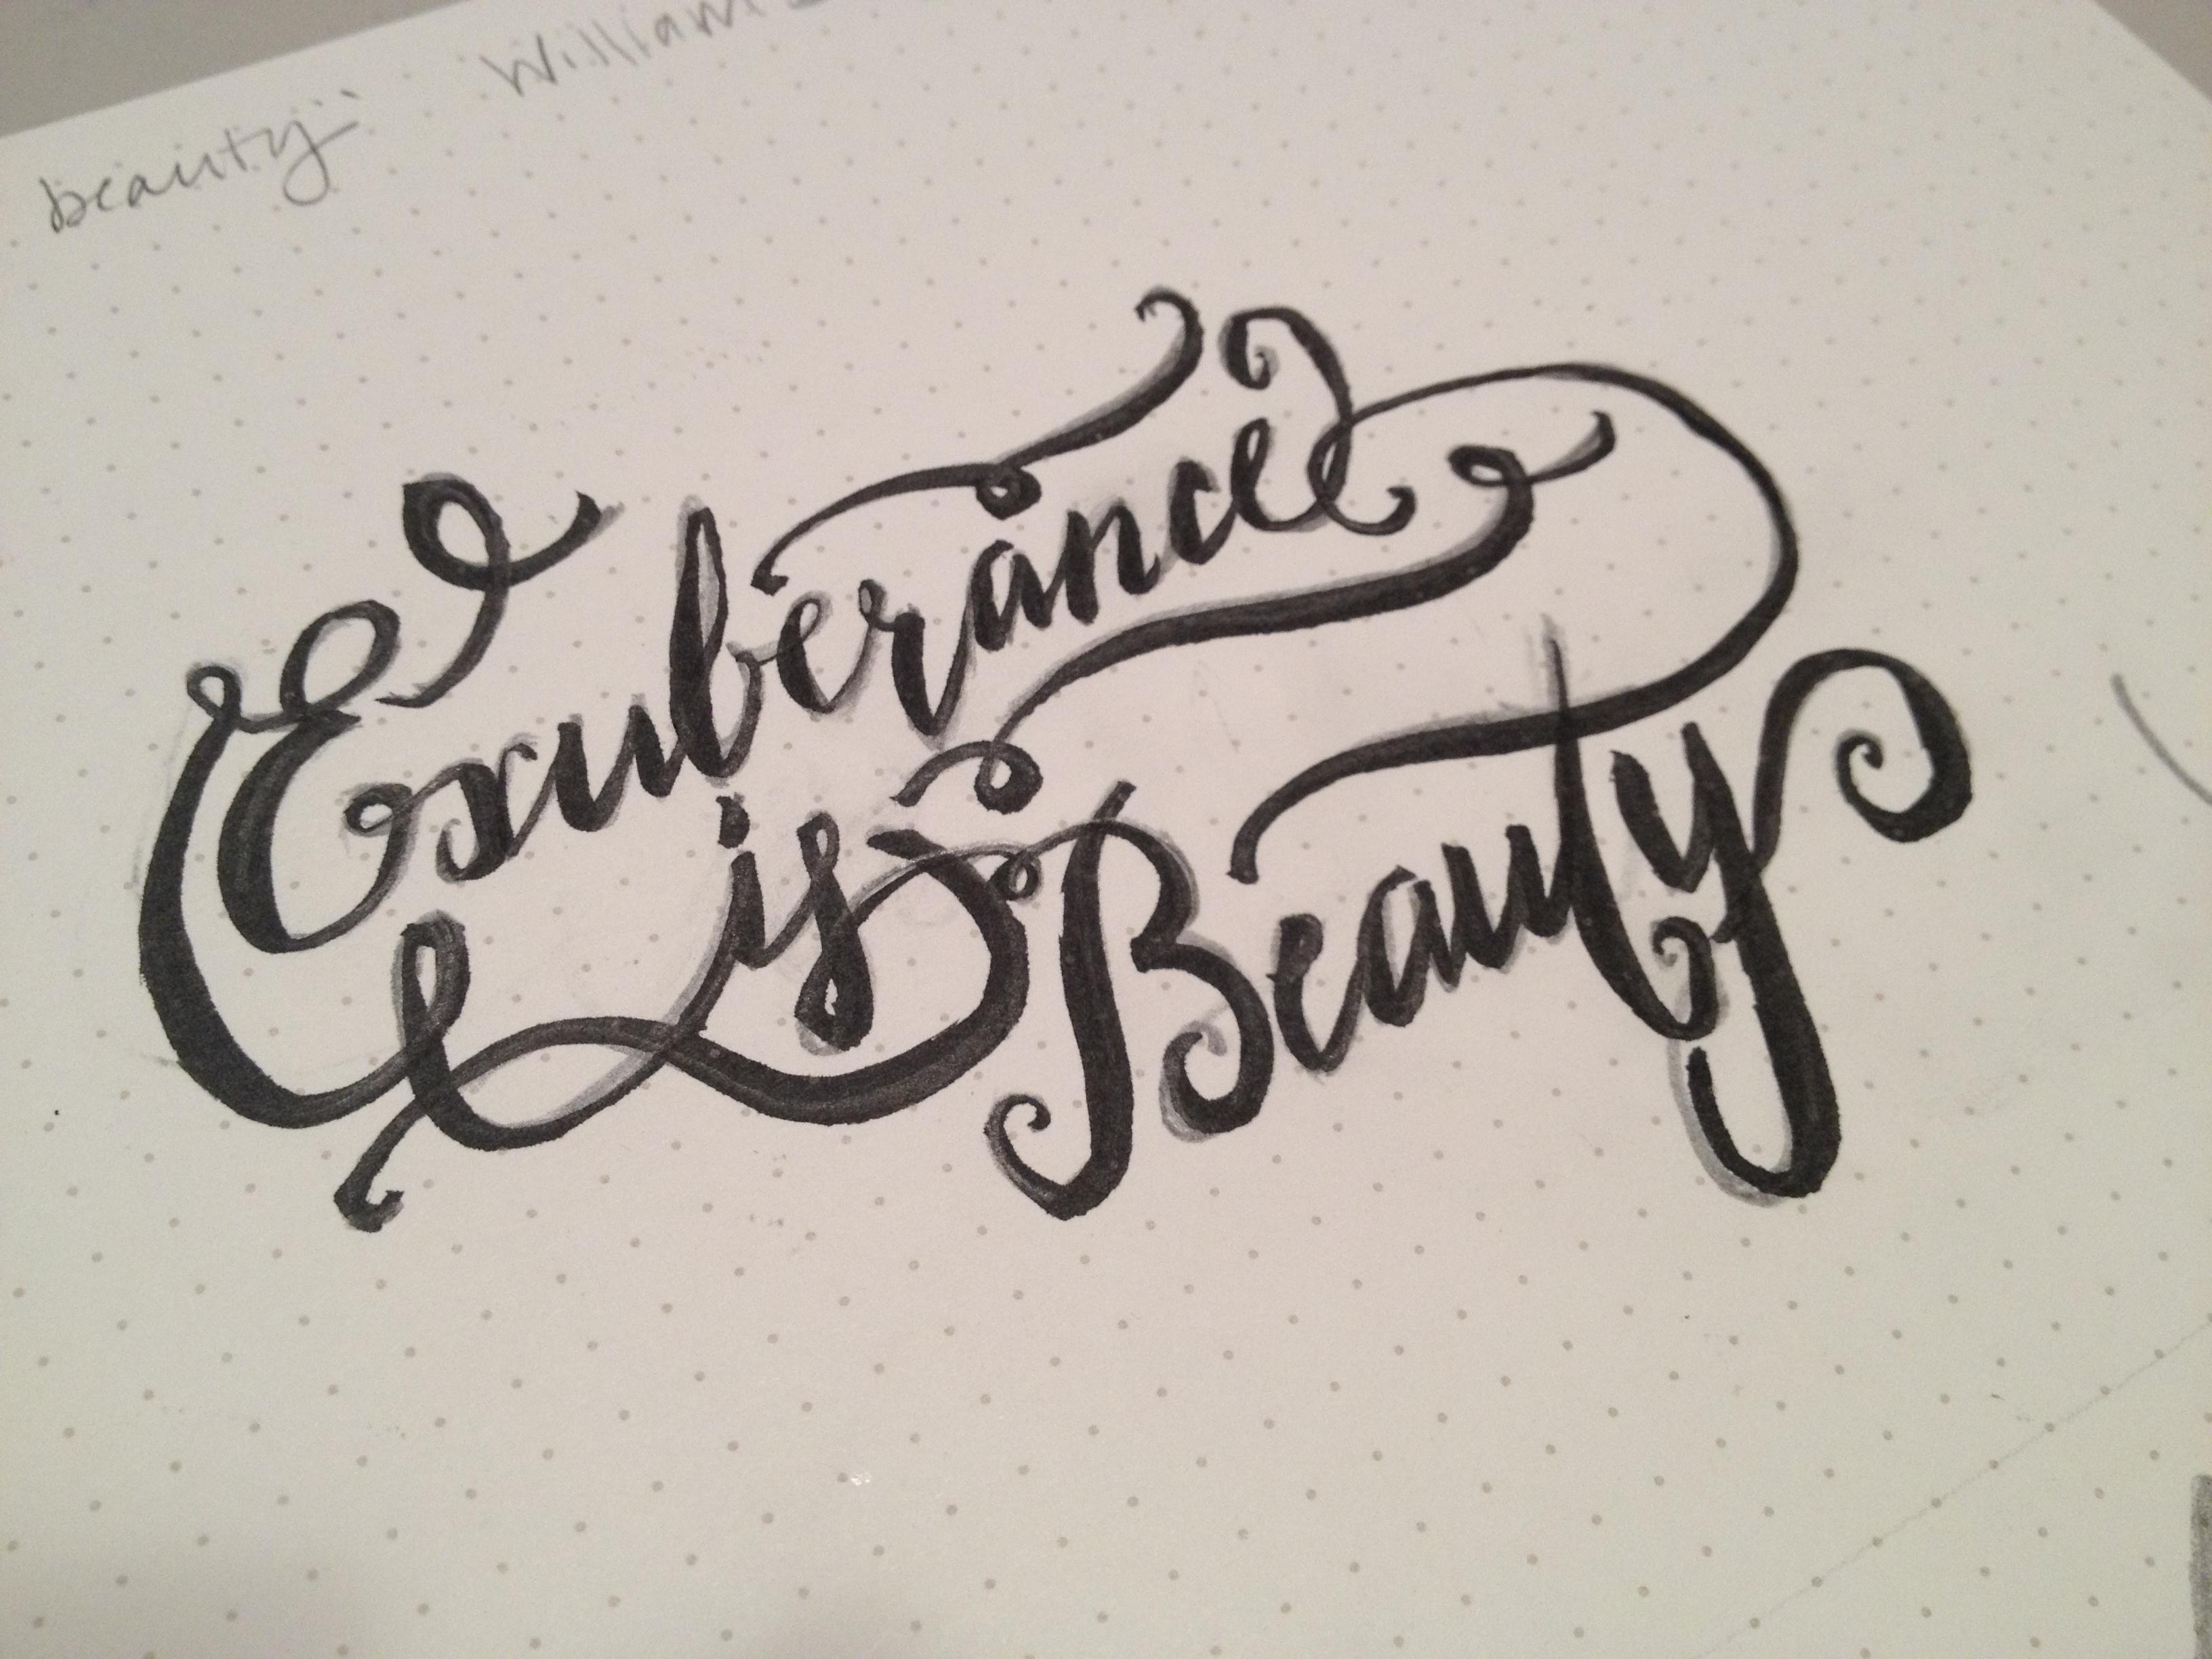 Exuberence is Beauty - image 1 - student project